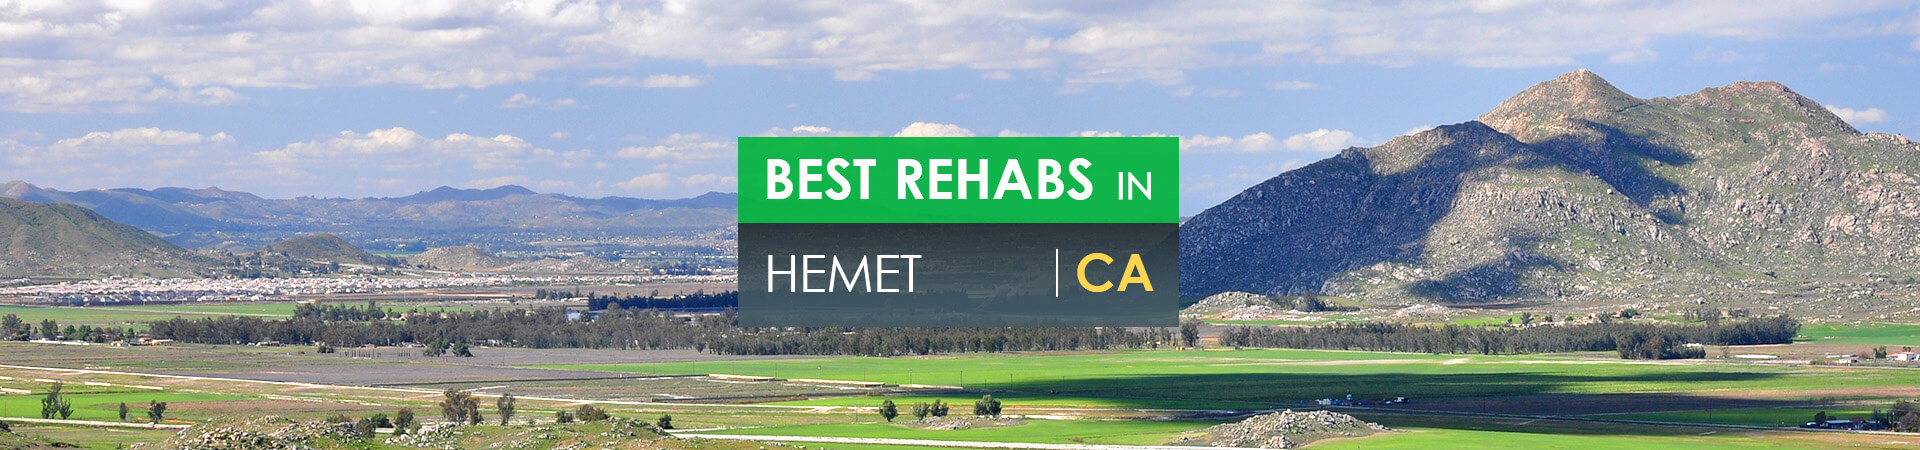 Best rehabs in Hemet, CA